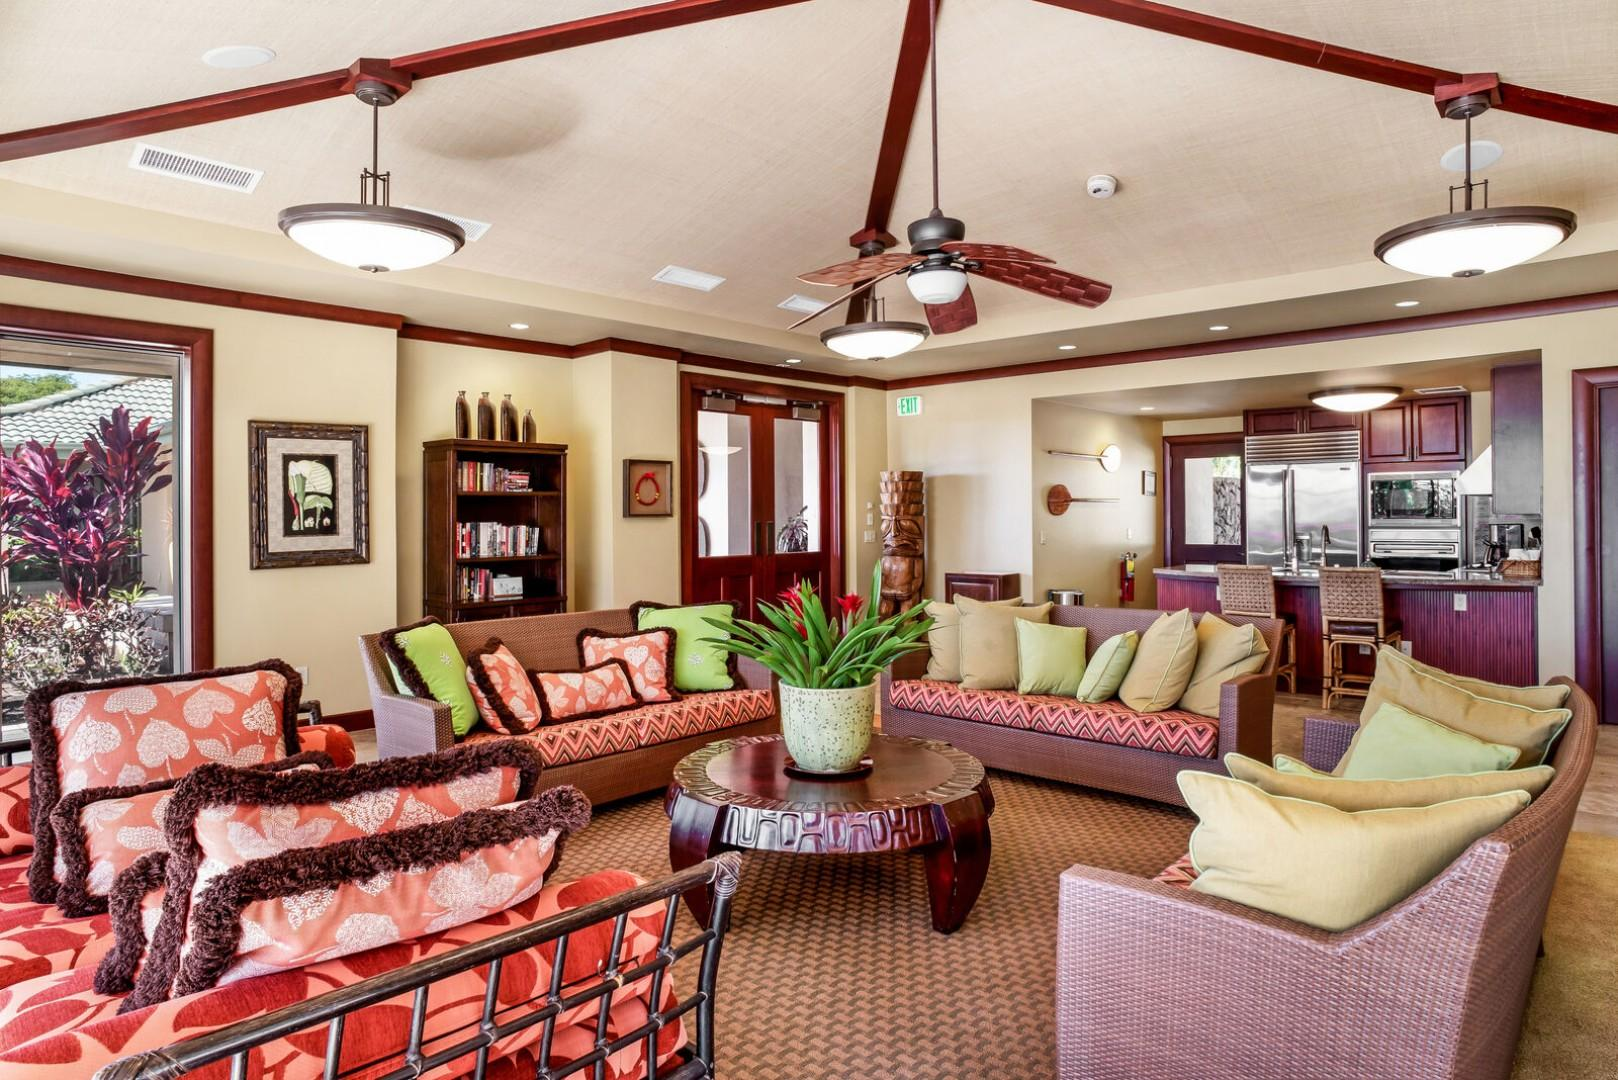 Wai'ula'ua Amenities Center: shared lounge area with kitchen in background.